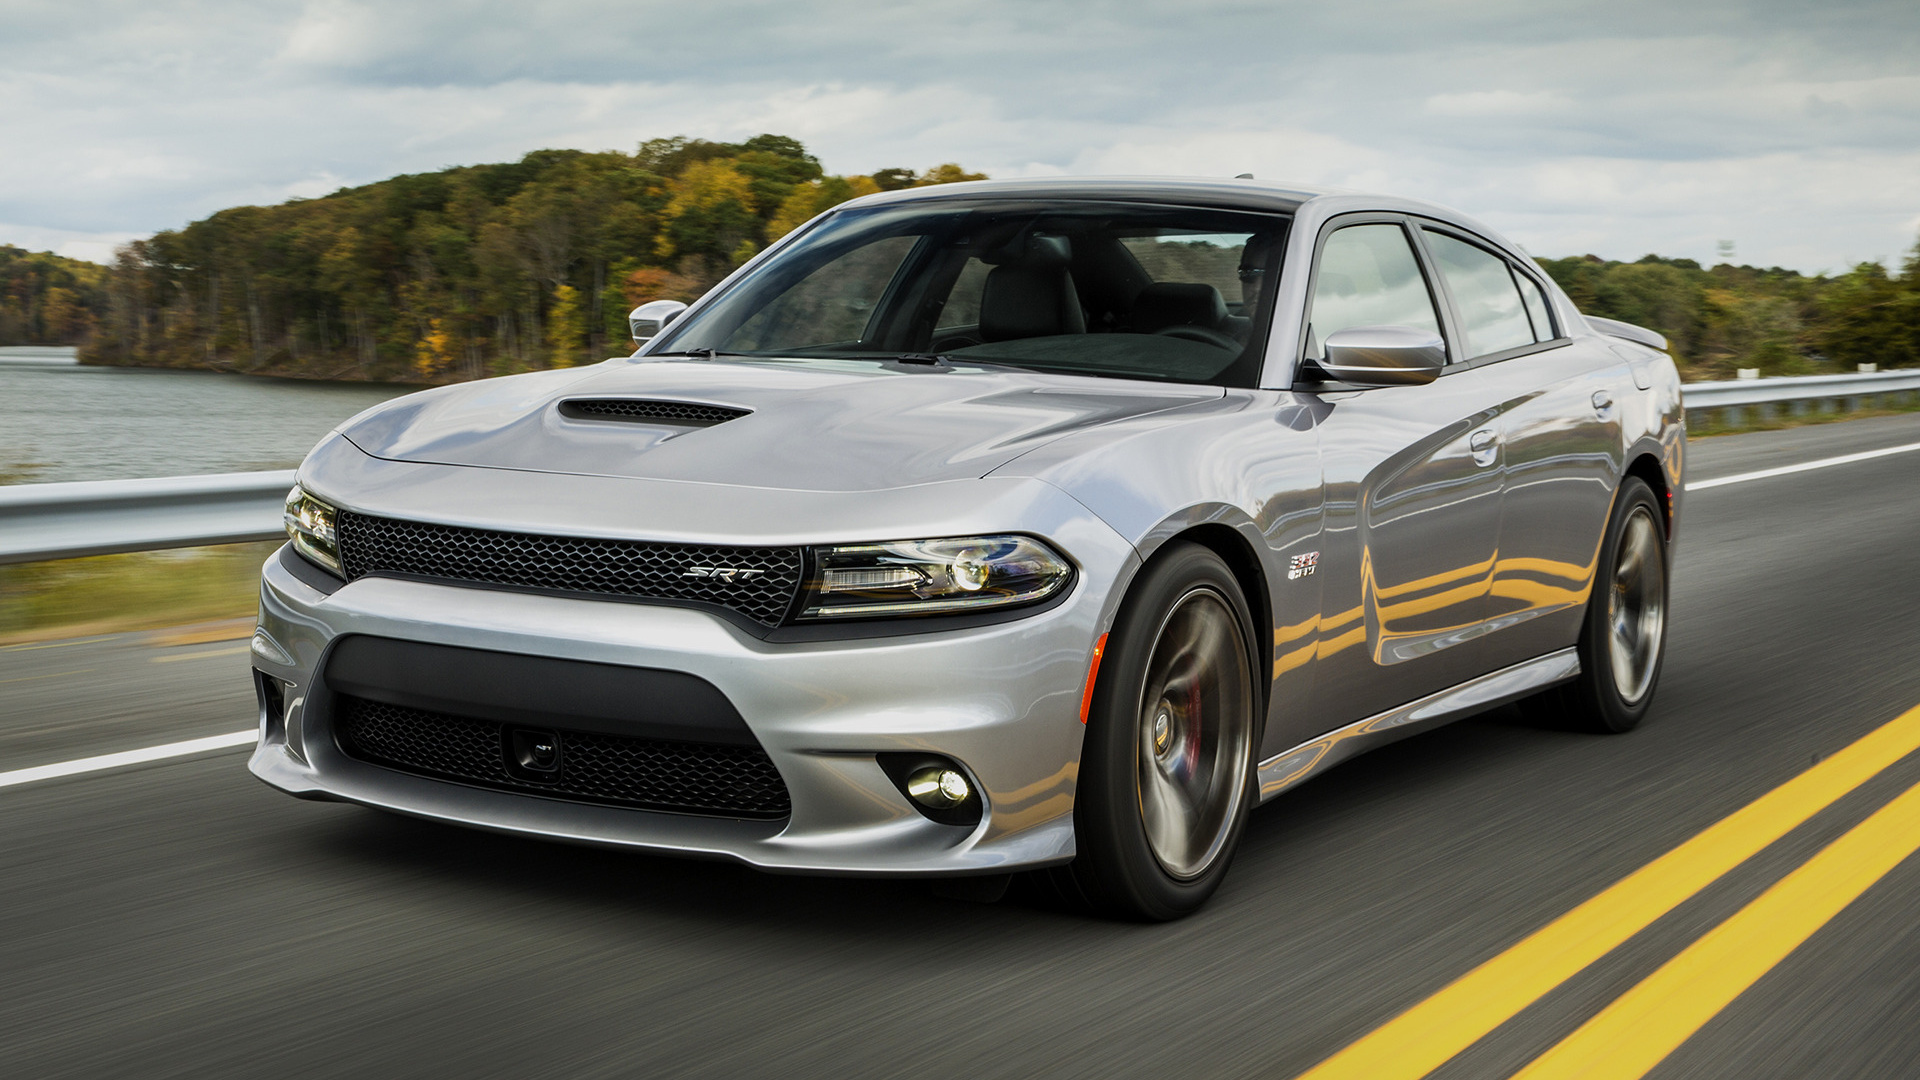 2015 Dodge Charger SRT 392 - Wallpapers and HD Images ...